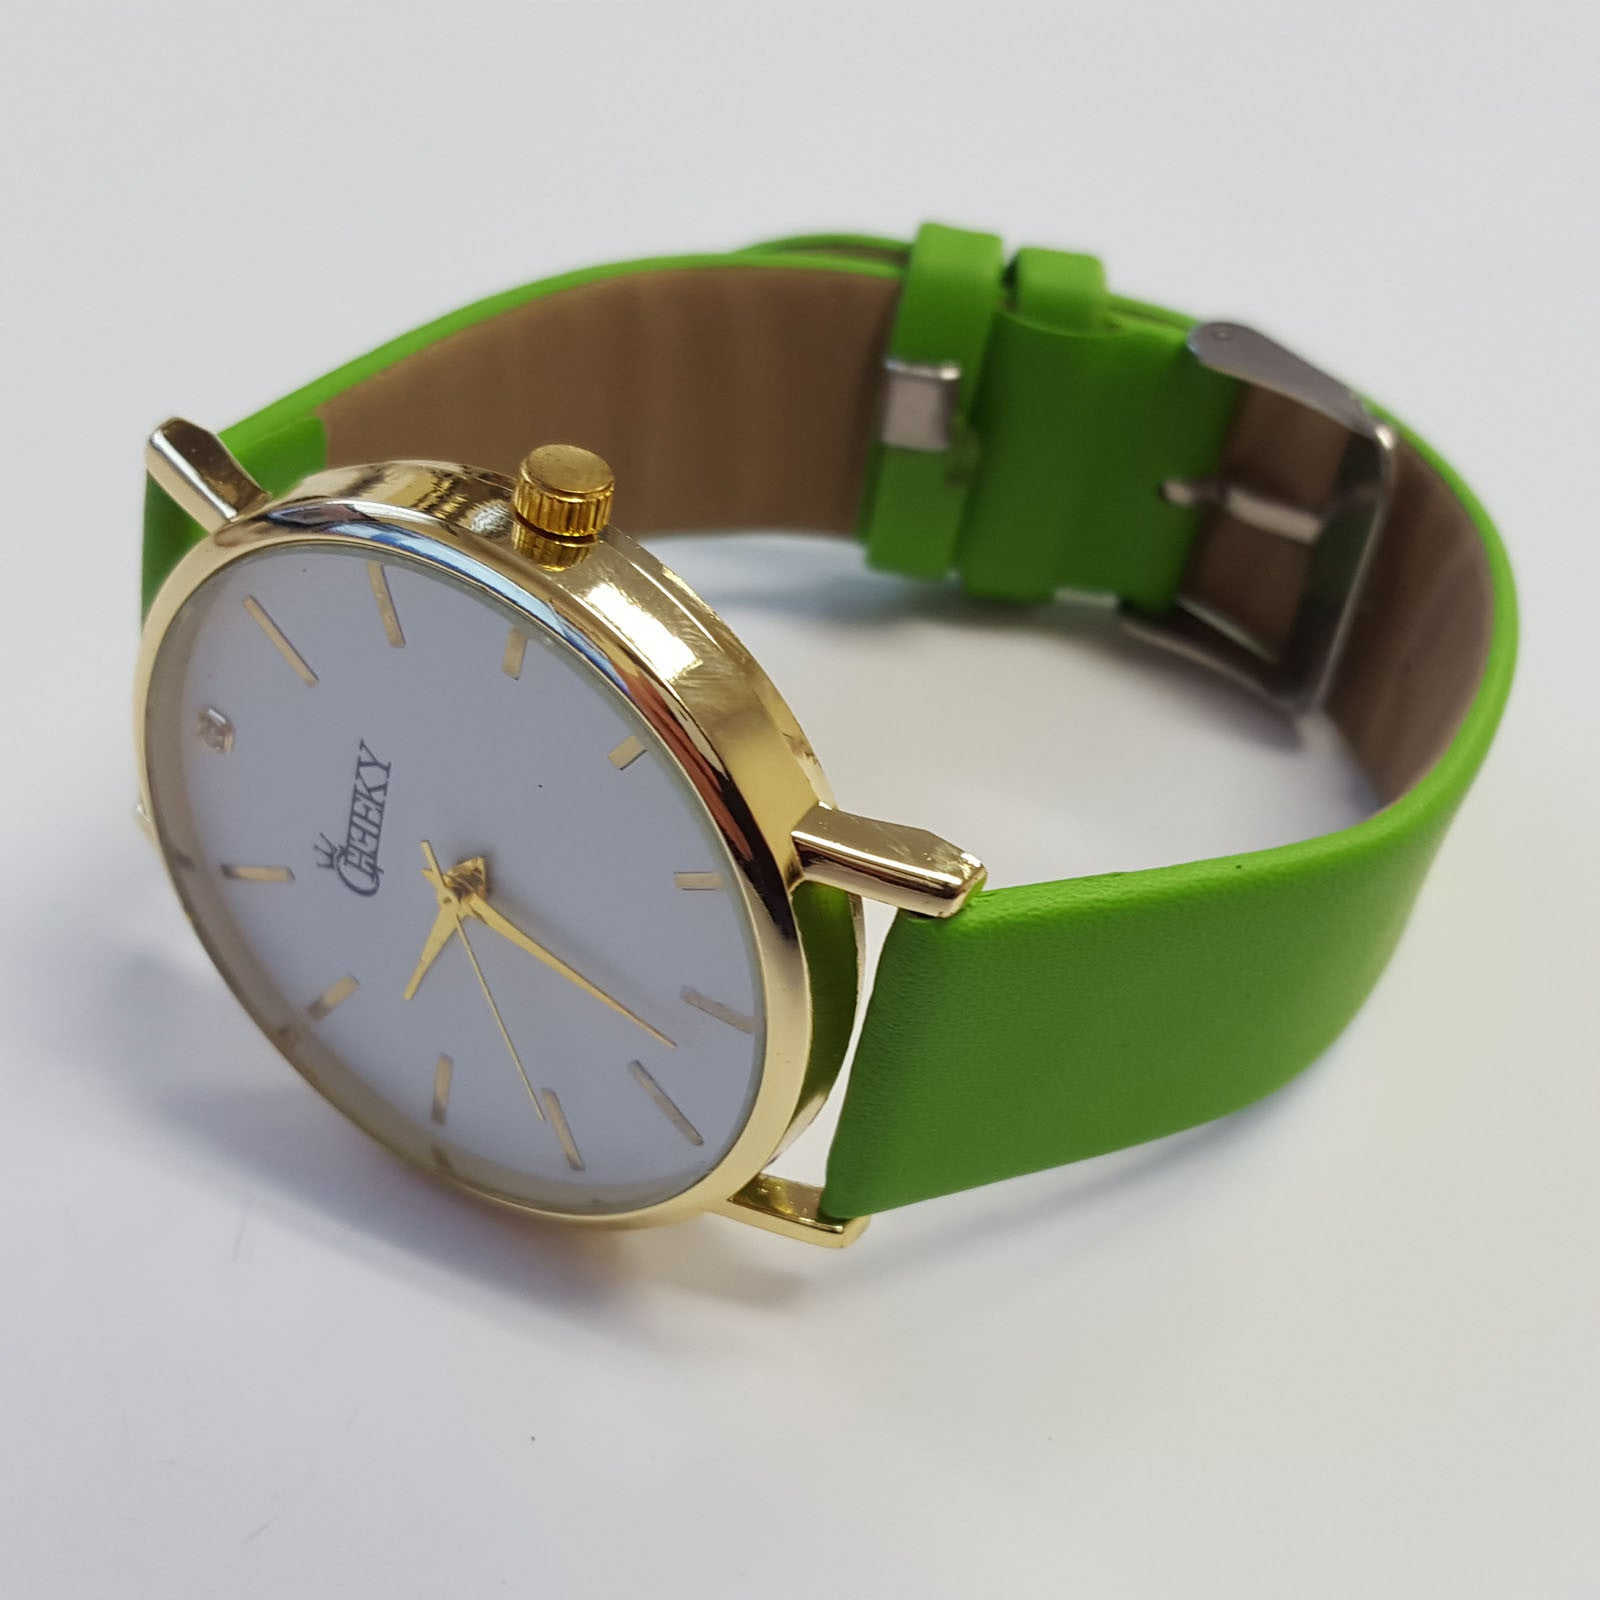 cheeky ladies faux green leather large face analogue watch he010 cheeky ladies faux green leather large face analogue watch he010 green